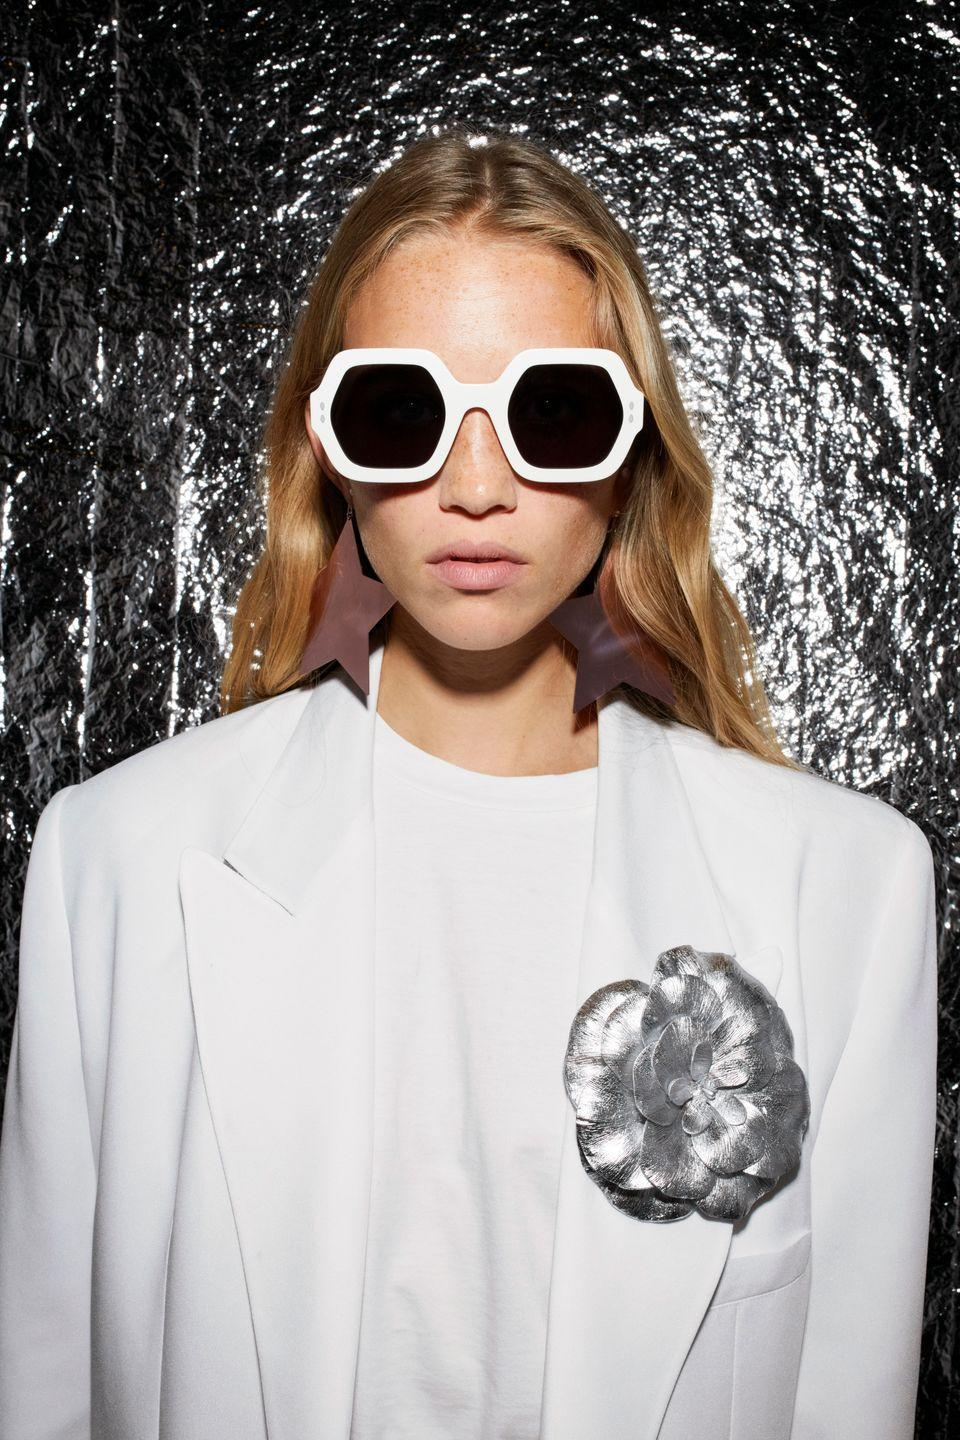 """<p><strong>Who: </strong>Isabel Marant</p><p><strong>What: </strong>Spring Summer 2021 Eyewear</p><p><strong>Where:</strong> Online at Isabelmarant.com</p><p><strong>Why: </strong>Isabel Marant is synonymous with effortless Parisian chic, and the brand's Spring-Summer 2021 eyewear offering delivers on that premise. The launch includes geometric and oversized shapes, which mix seamlessly with the ease of the Isabel Marant wardrobe. The Spring campaign was shot by Juergen Teller and features Isabel regular Rebecca Leigh Longendyke.</p><p><a class=""""link rapid-noclick-resp"""" href=""""https://www.isabelmarant.com/us/isabel-marant/women/sunglasses"""" rel=""""nofollow noopener"""" target=""""_blank"""" data-ylk=""""slk:SHOP NOW"""">SHOP NOW</a><strong><br></strong></p>"""